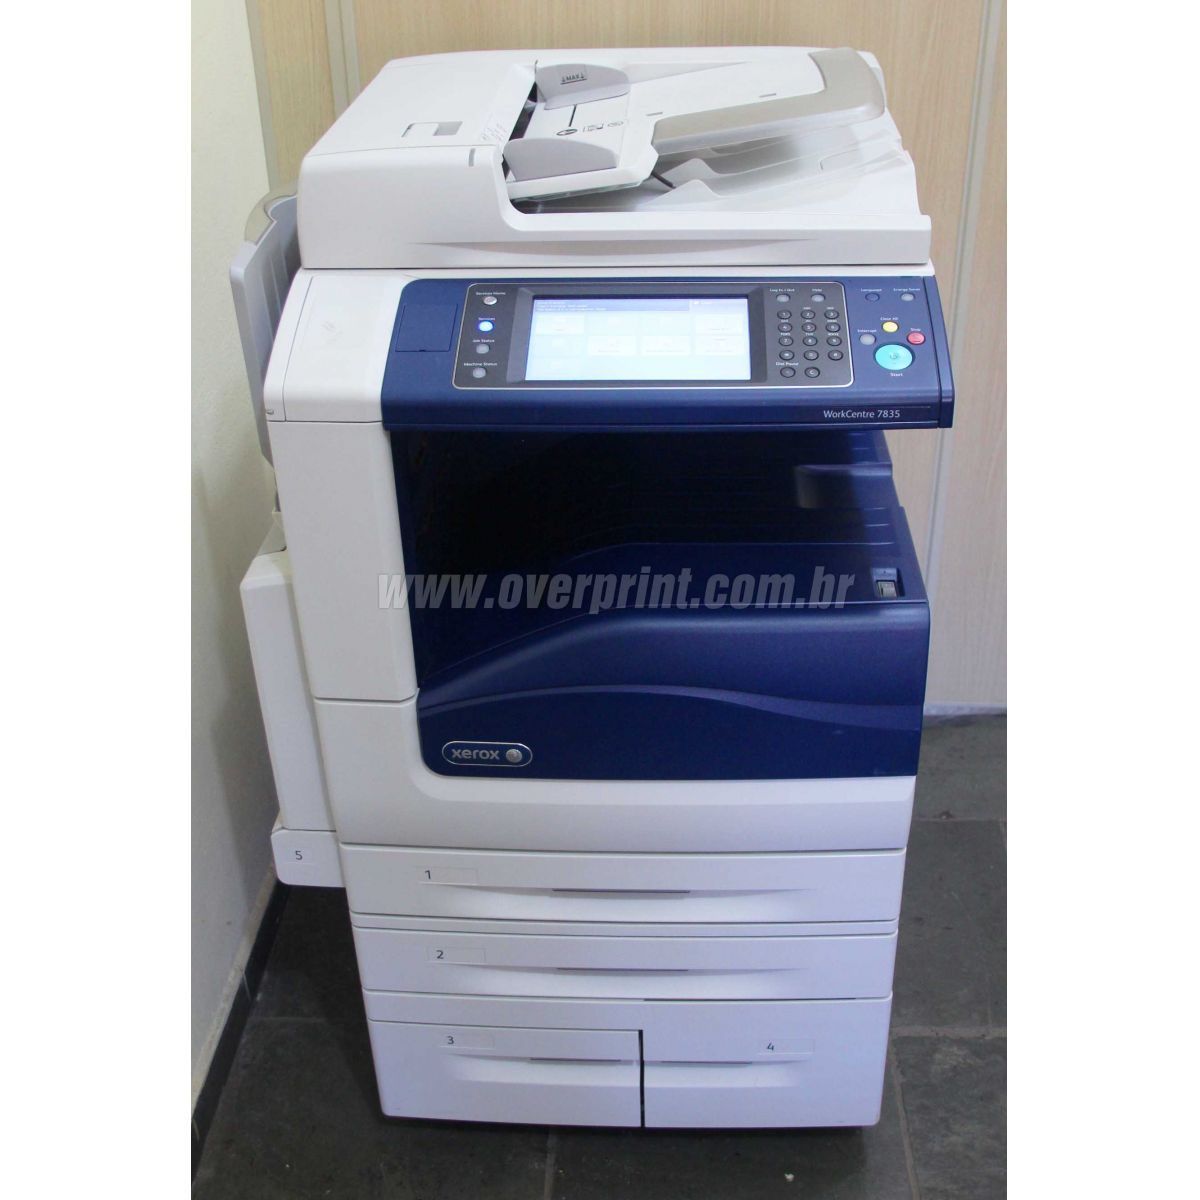 Multifuncional Xerox WorkCentre 7845 - Overprint